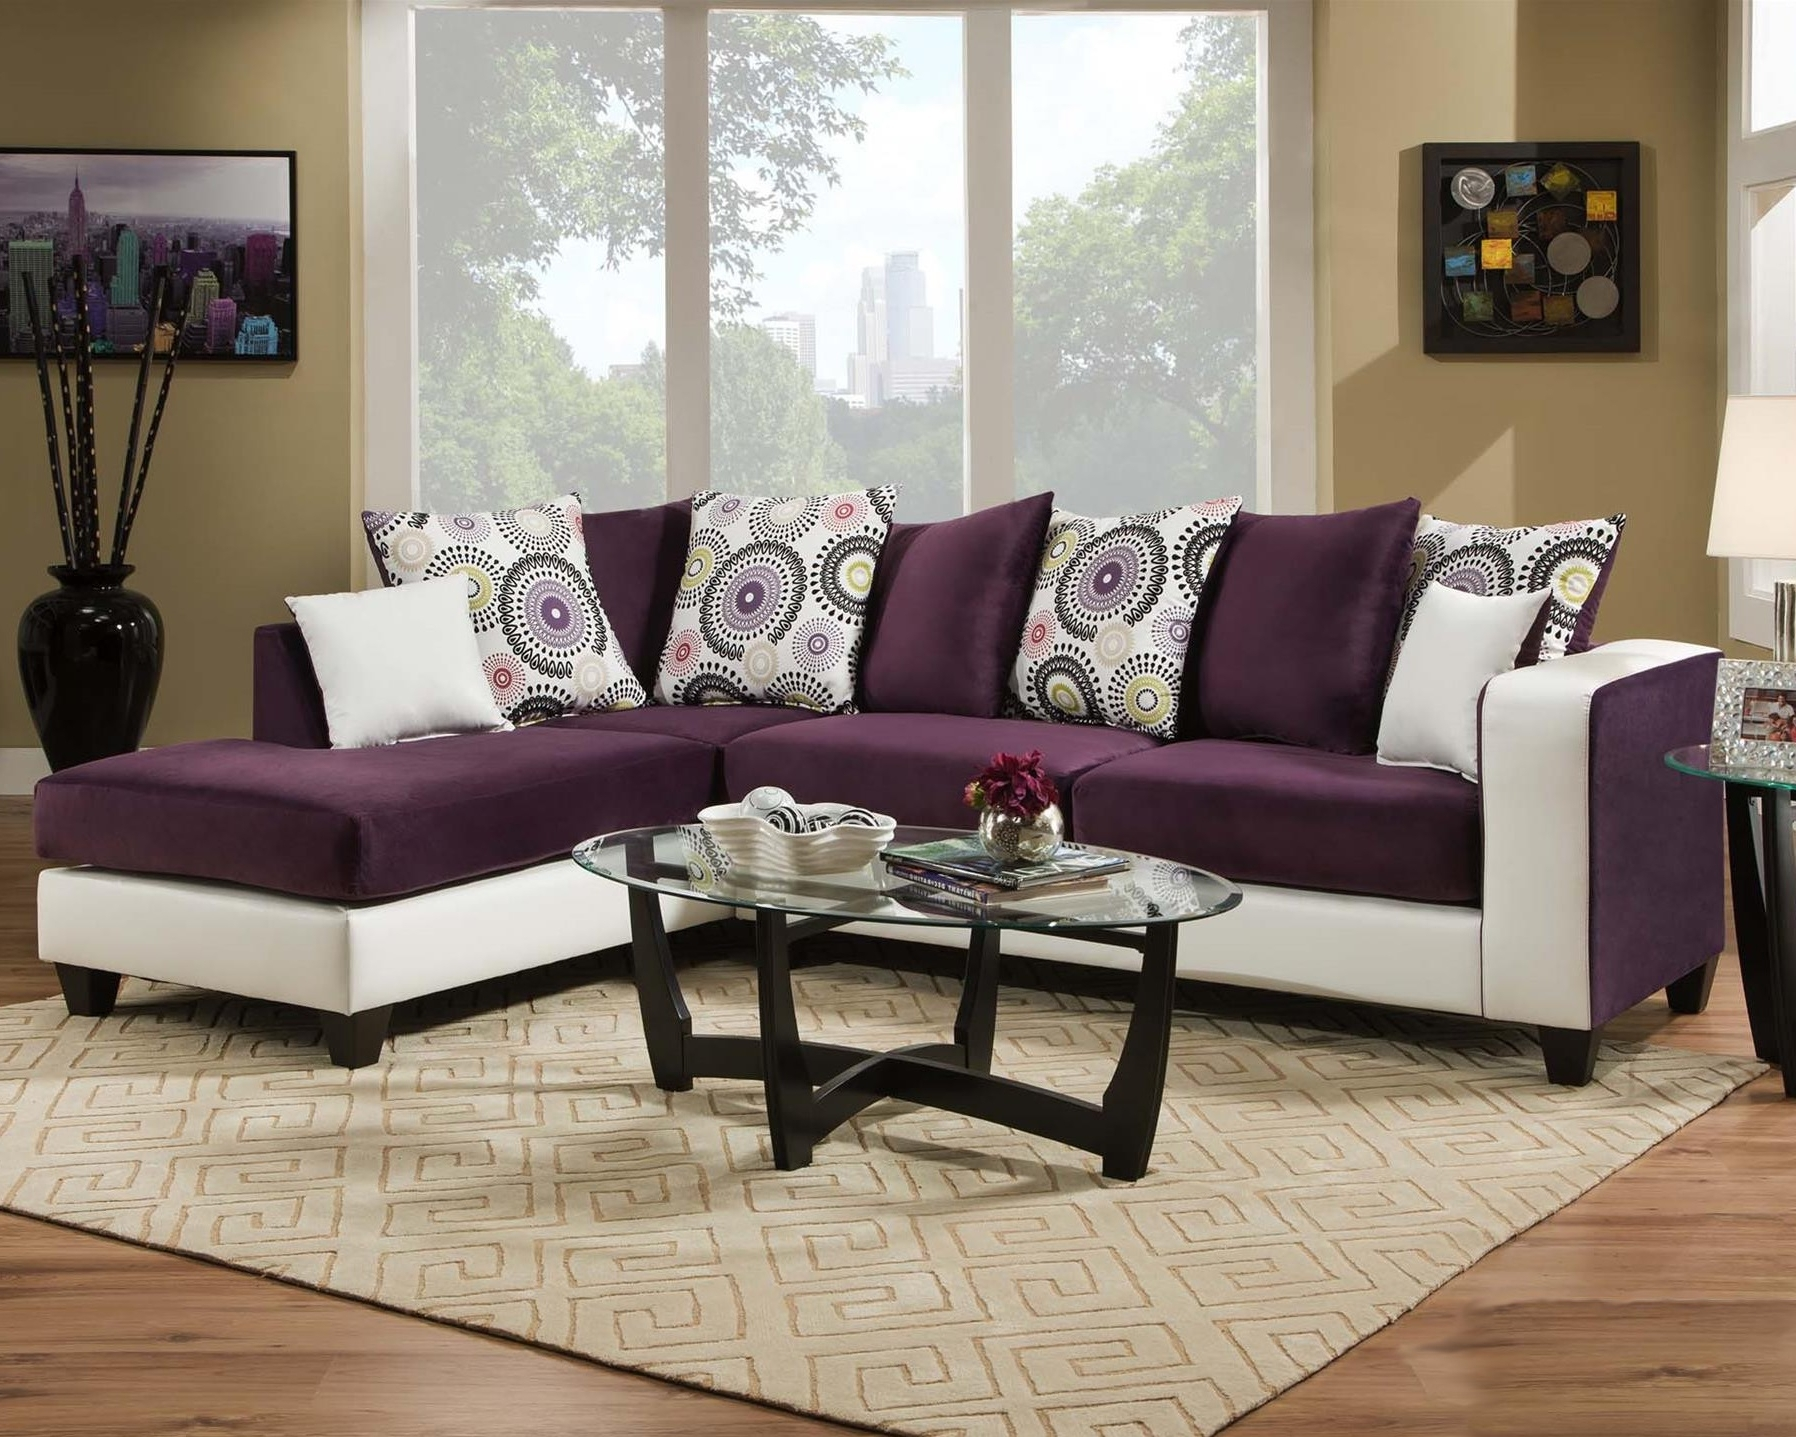 Famous Farmers Furniture Sectional Sofas Inside Winsome Design Farmers Furniture Living Room Sets Charming (View 3 of 15)